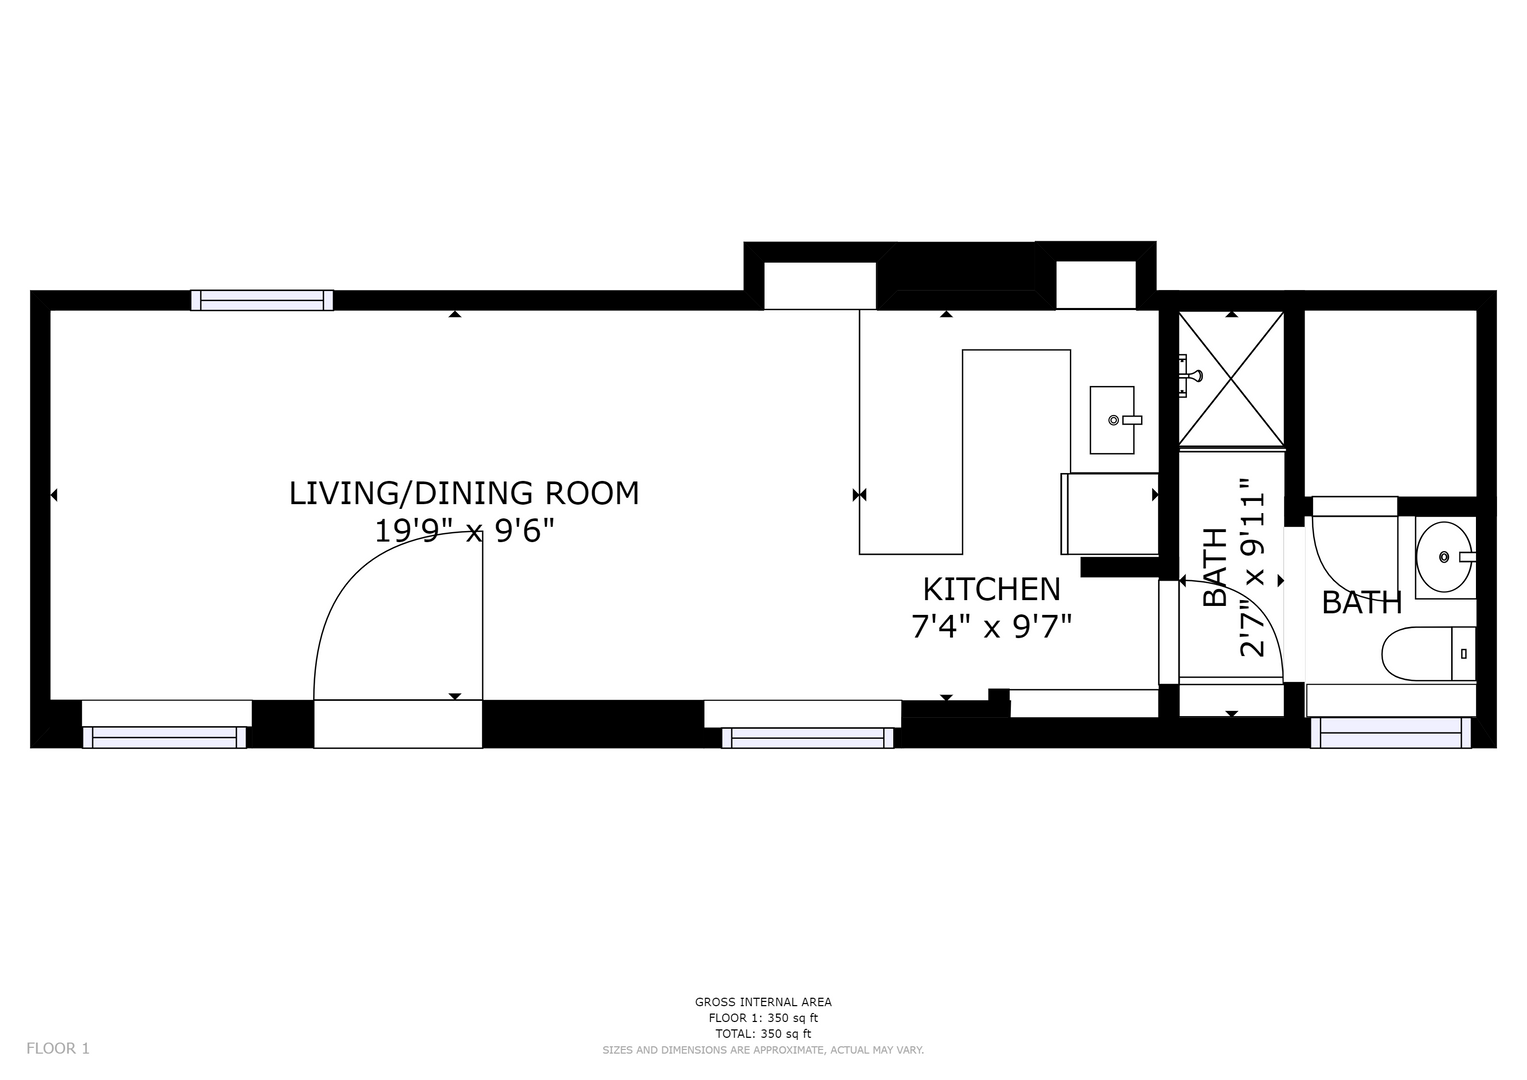 Studio | Basement Level